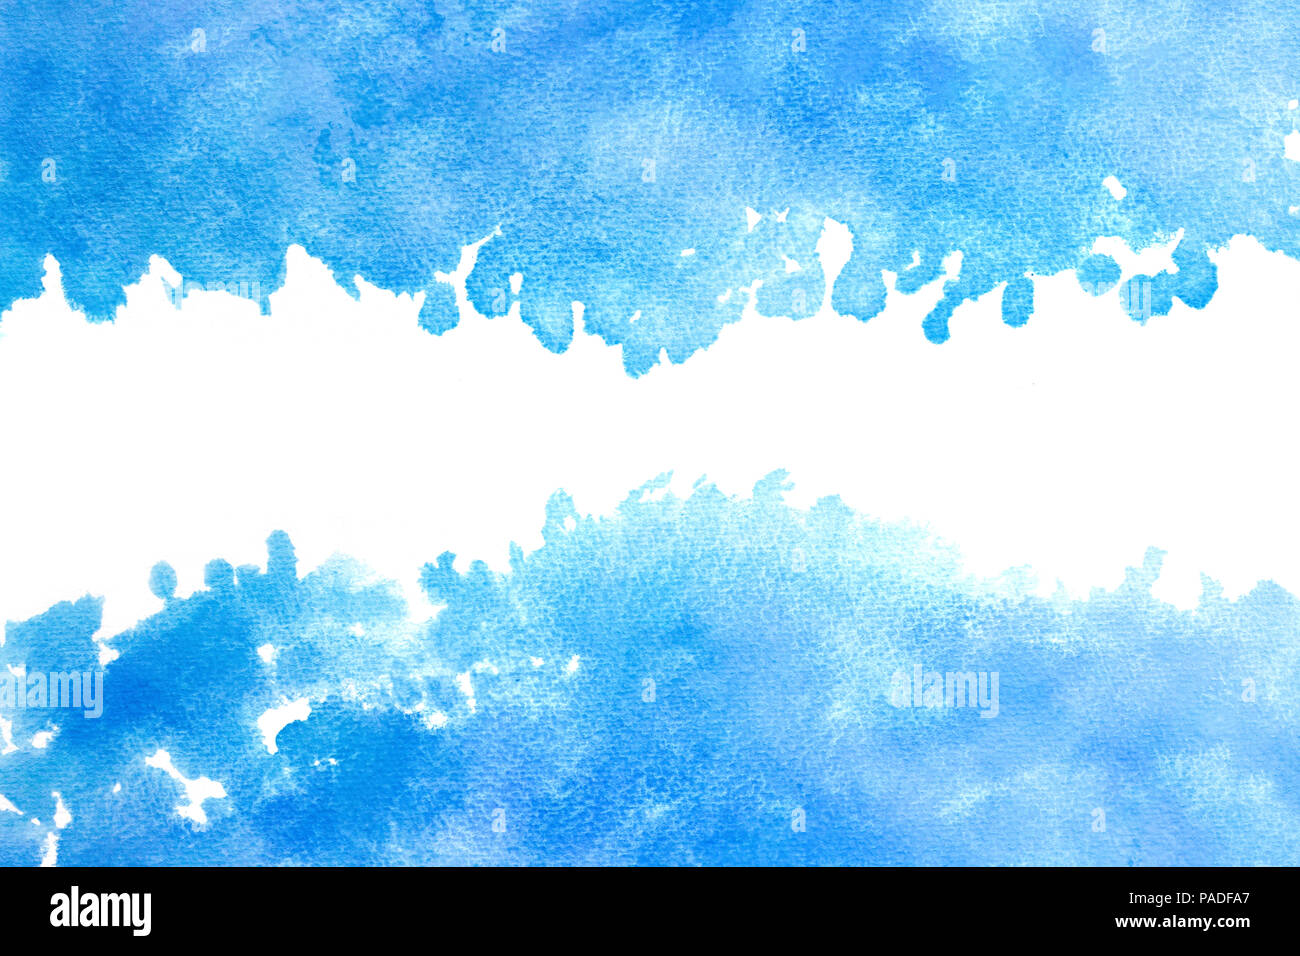 Blue Sky Watercolor Abstract Or Grunge Vintage Paint